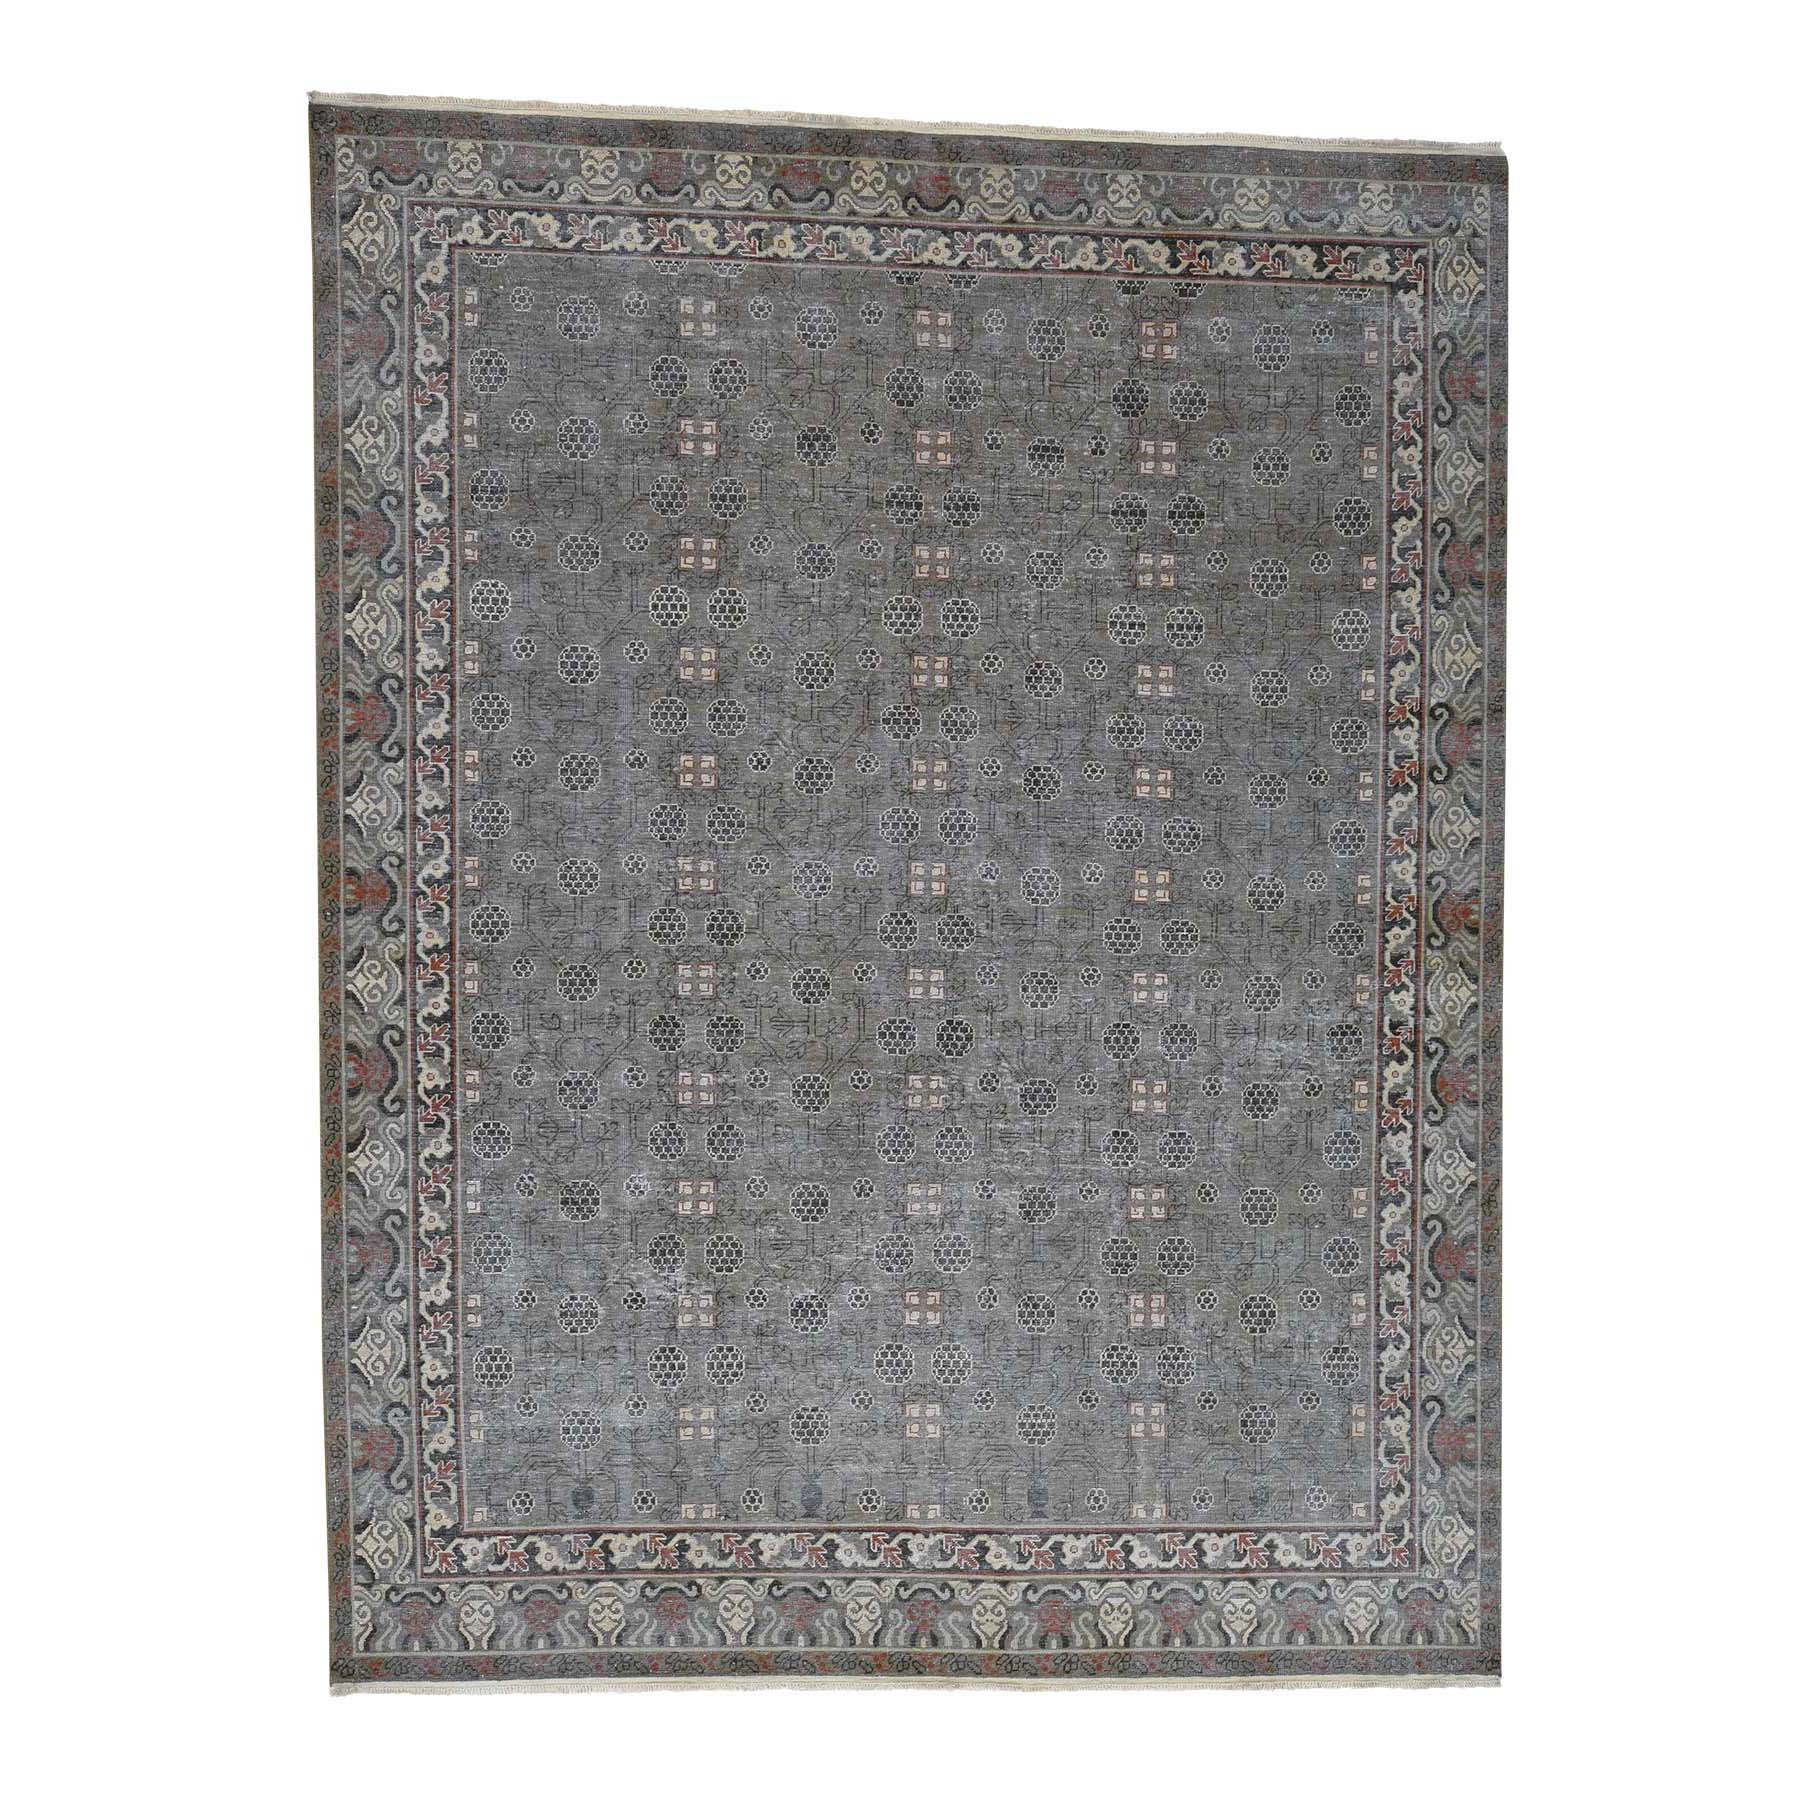 "9'2""X11'10"" Vintage Khotan With Pomegranate Design Zero Pile Distressed Oriental Rug moad0e99"